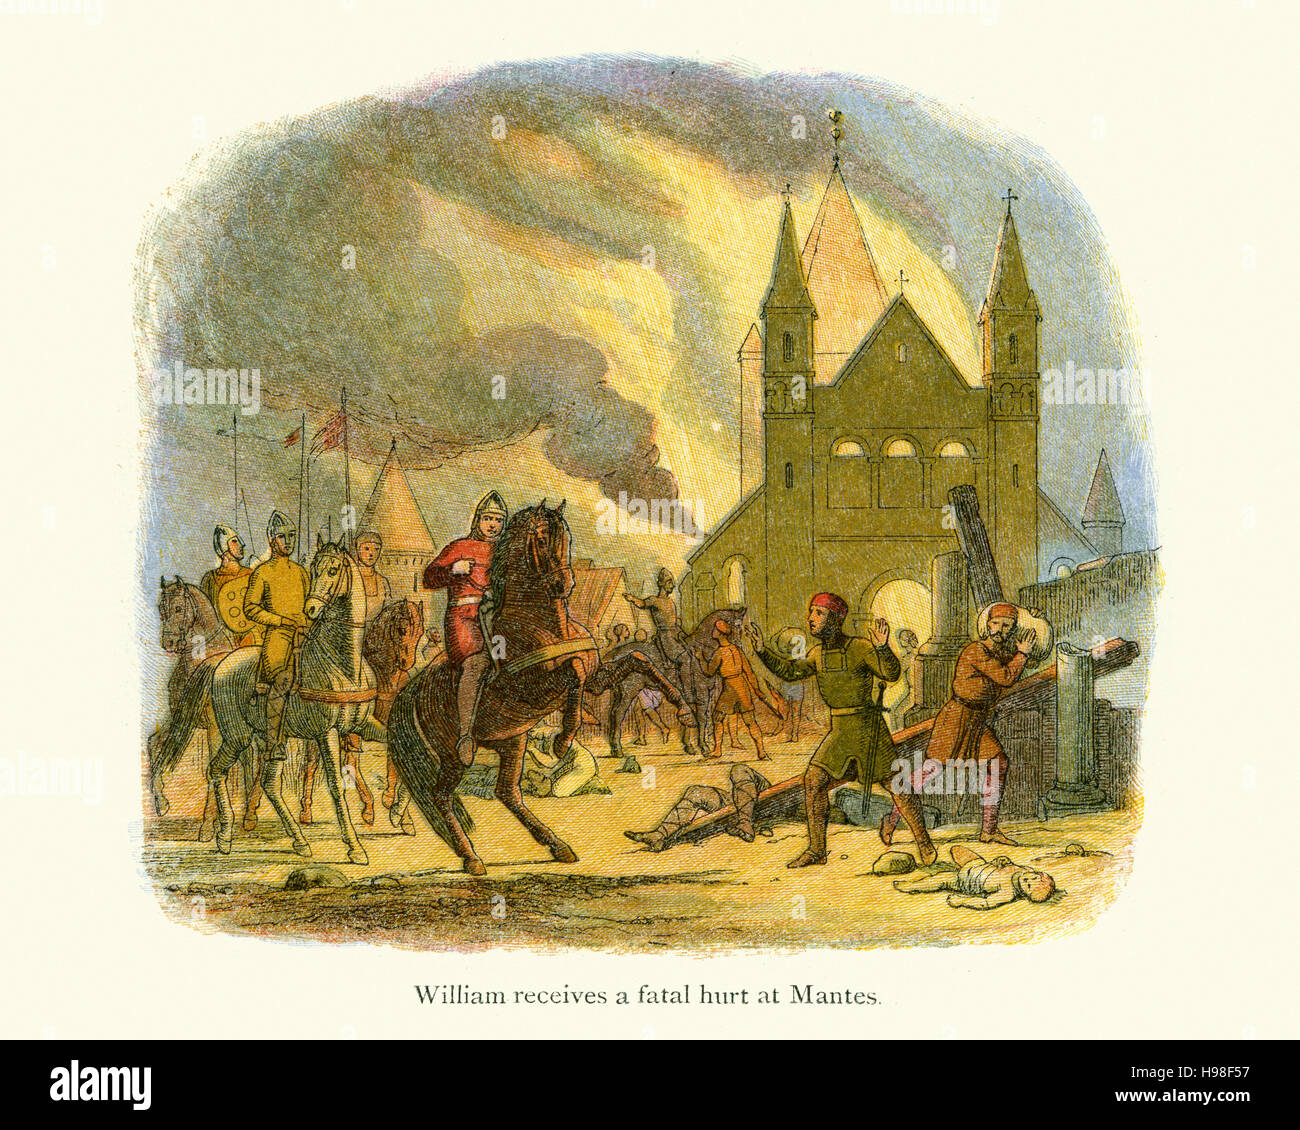 King William the Conqueror receiving a fatal wound at Mantes. In 1087 in France, William burned Mantes 50 km west Stock Photo